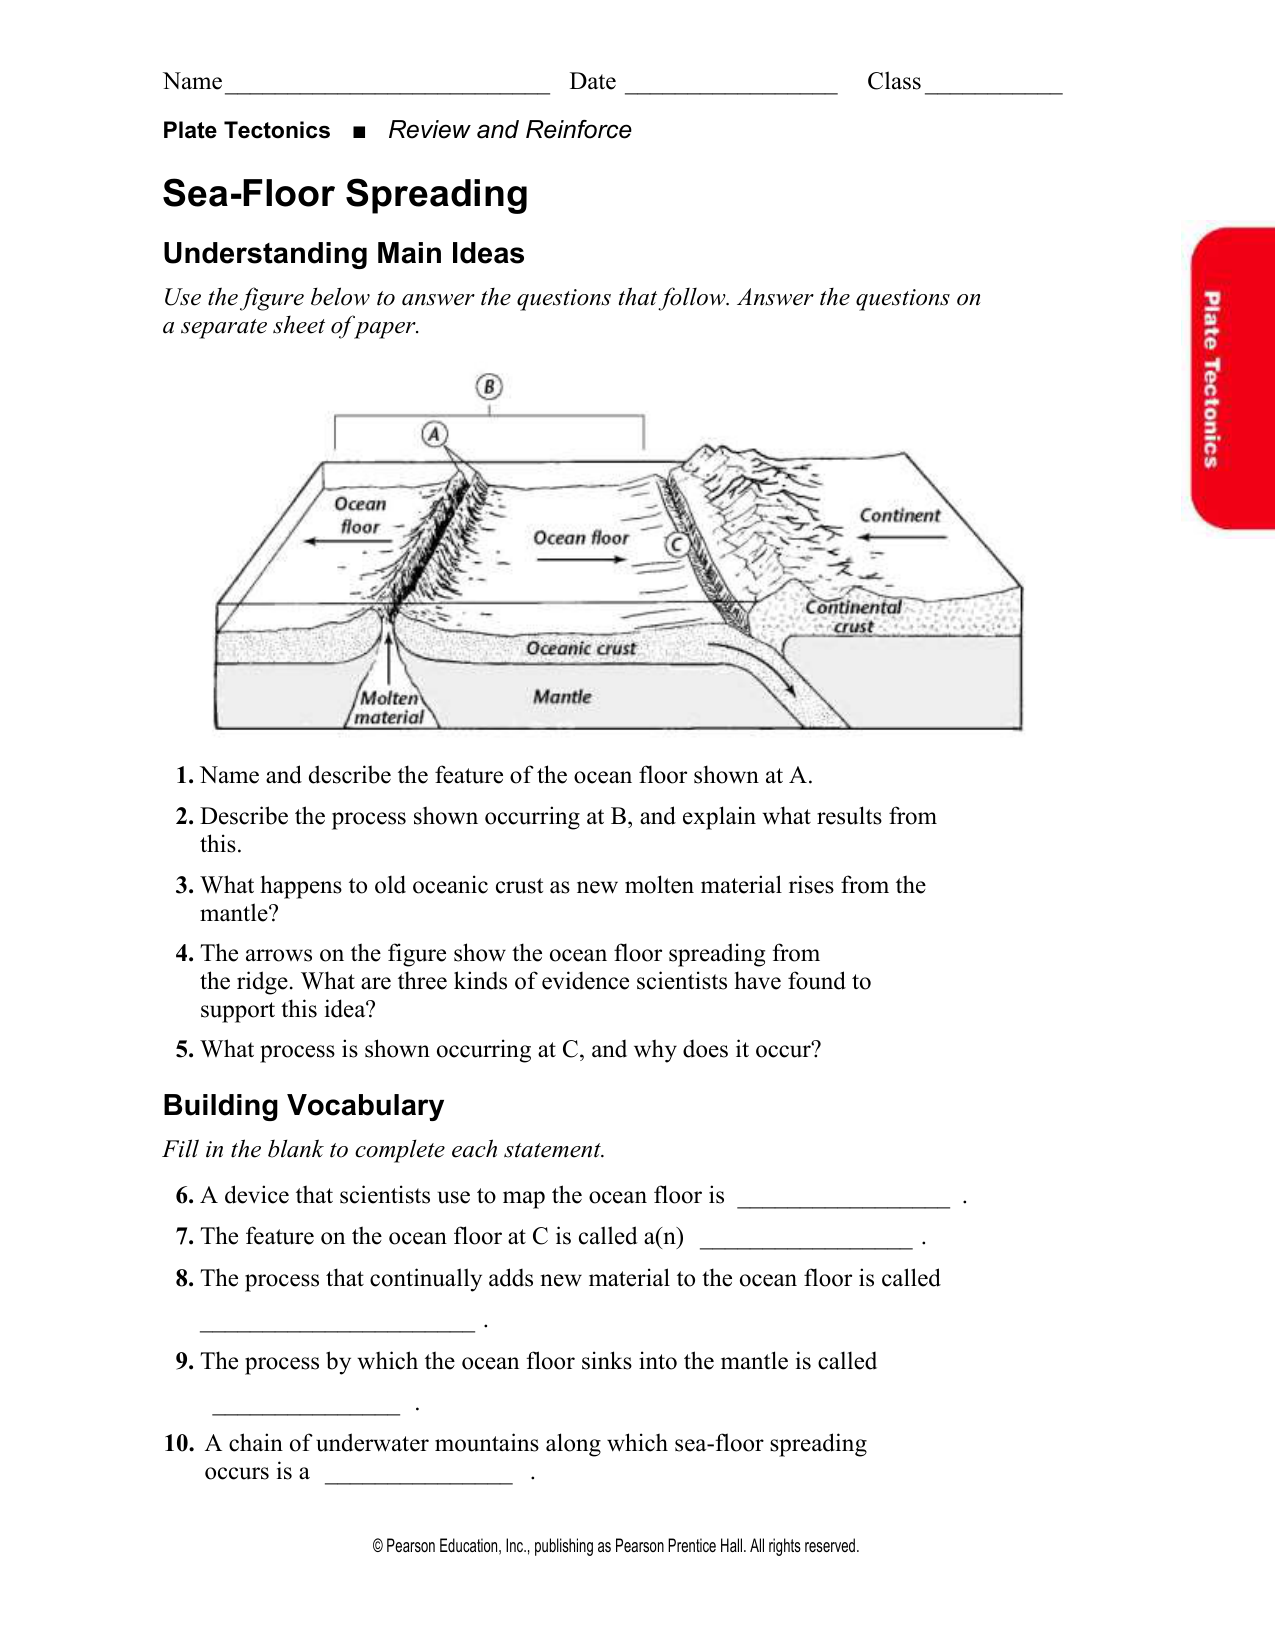 The Best Sea Floor Spreading Worksheet Answers Pearson Education And Review Seafloor Spreading Pearson Education Sea Floor [ 1651 x 1275 Pixel ]